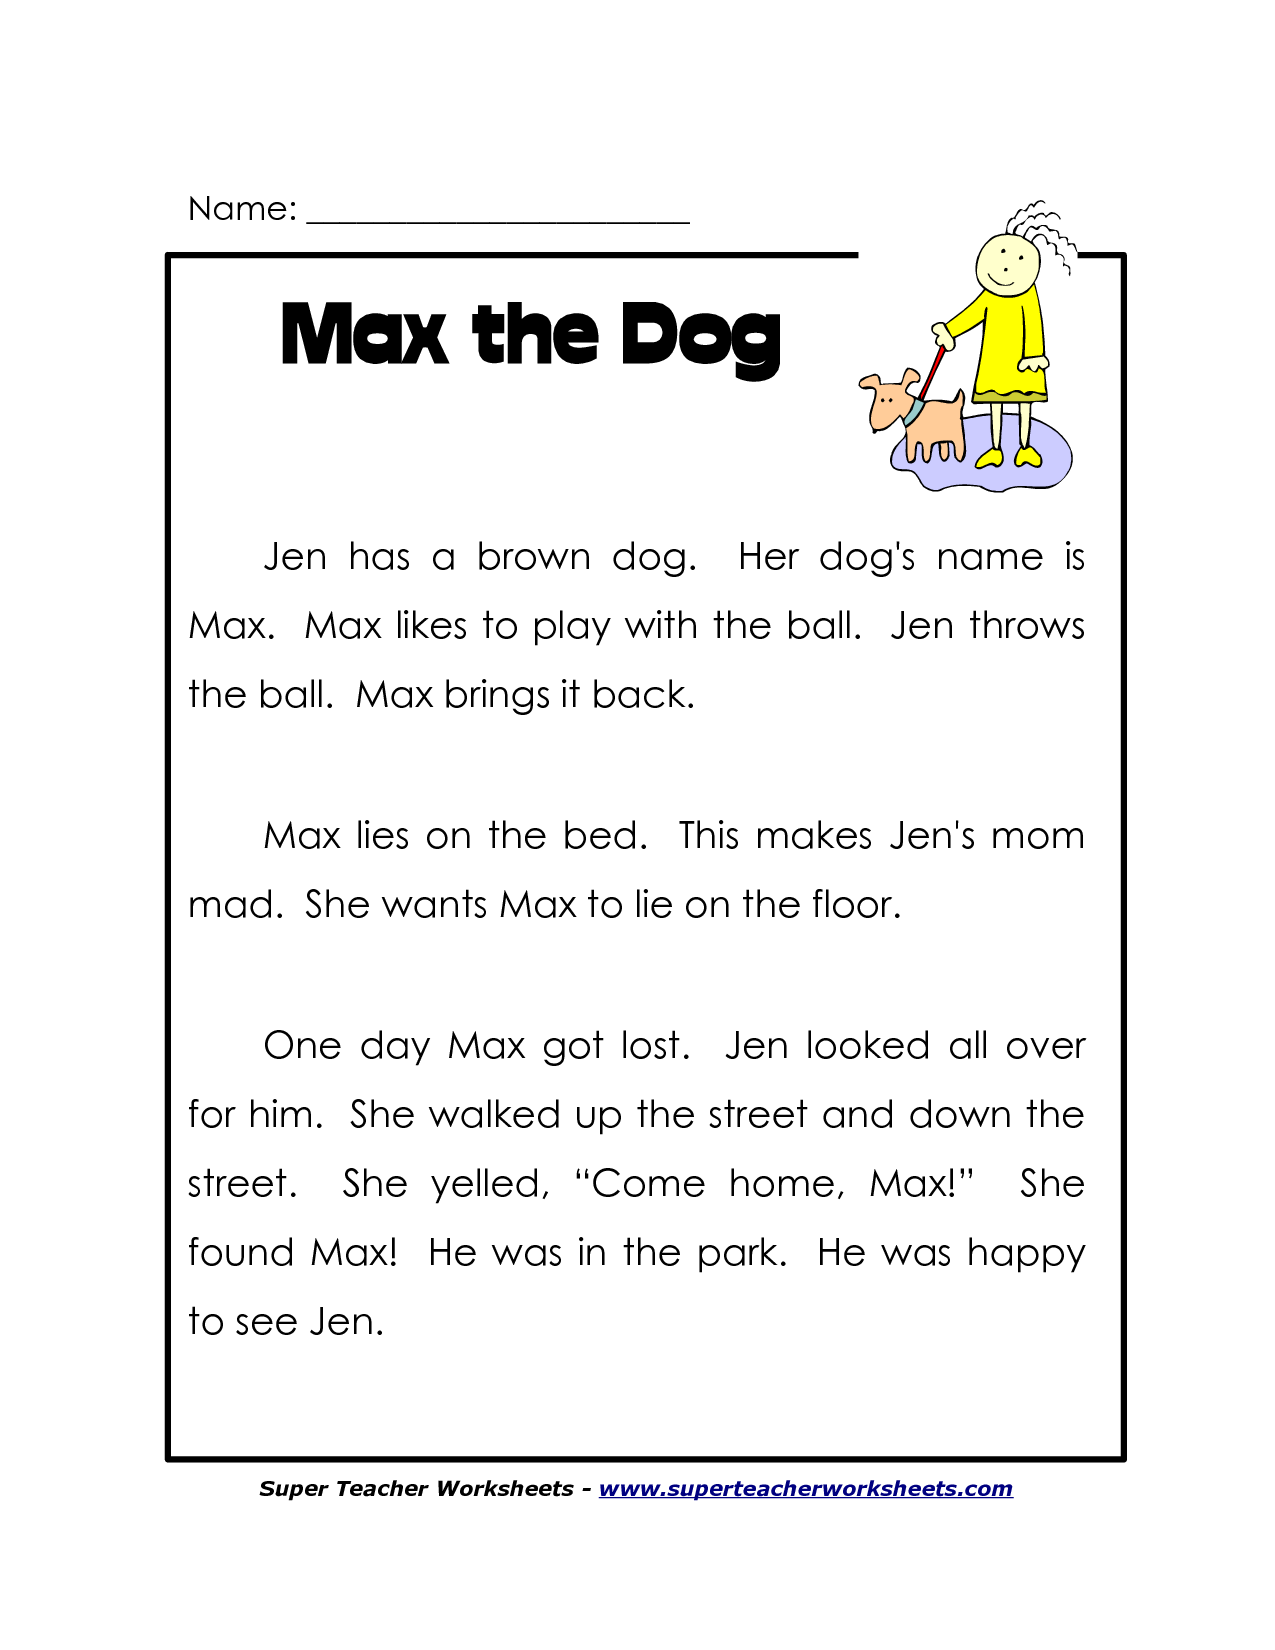 Worksheet 1st Grade Reading Printable Worksheets 1st grade reading printable worksheets pichaglobal comprehension and children on pinterest grade